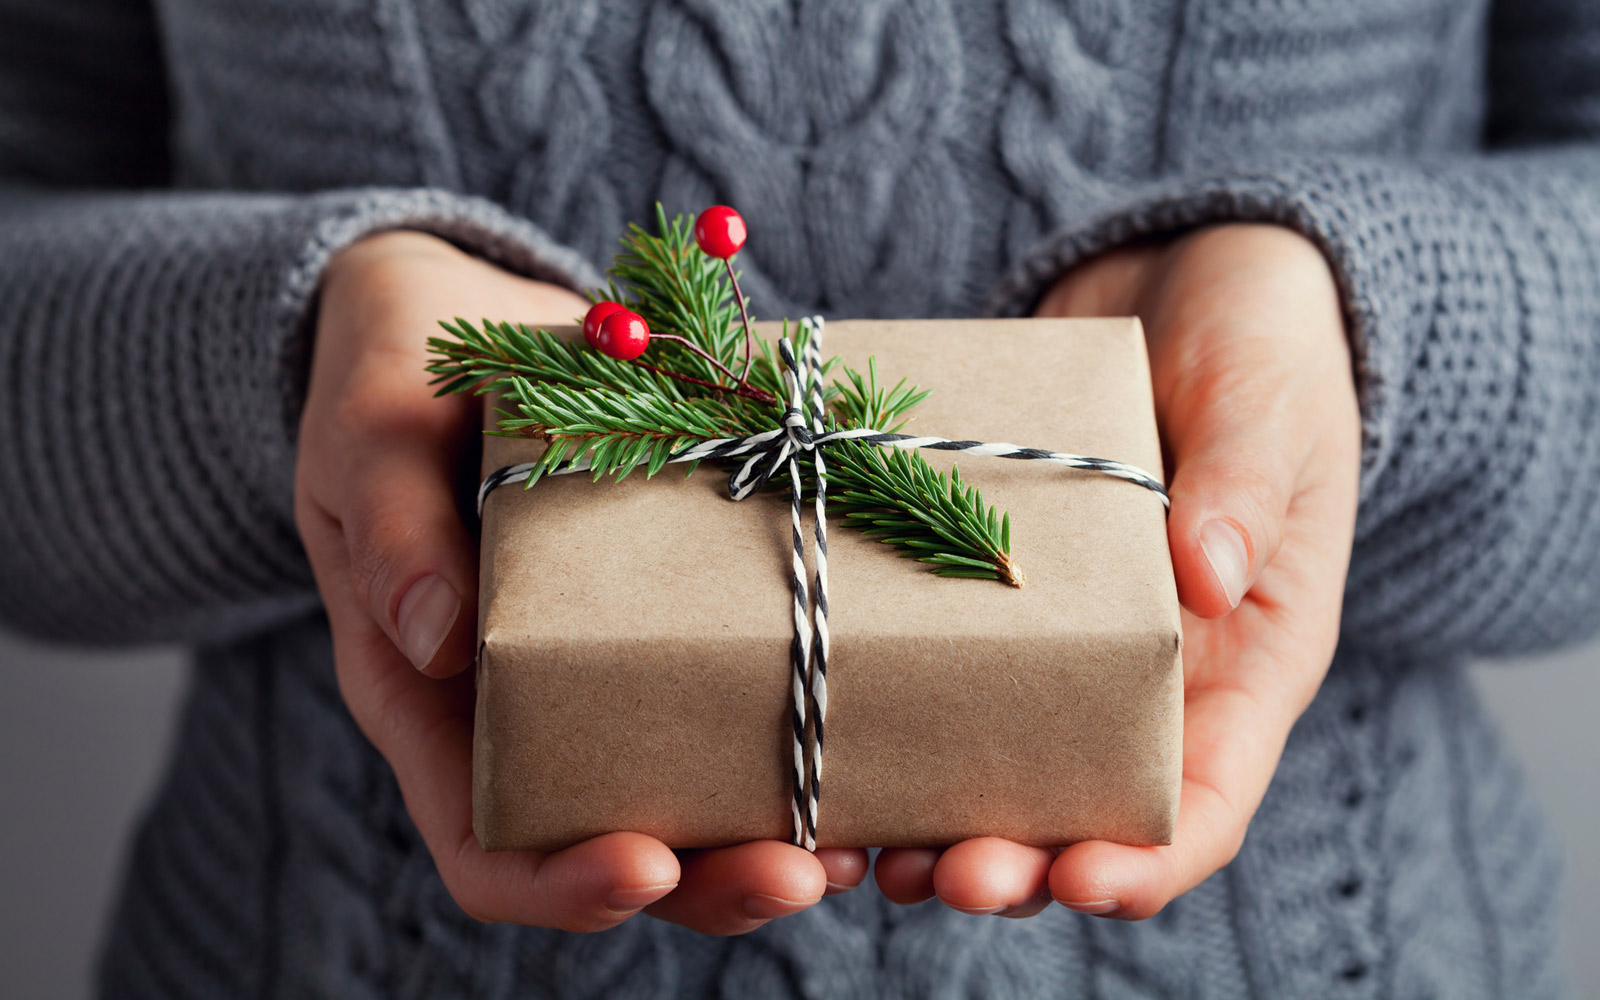 Woman hands holding christmas gift or present box. Holiday concept.